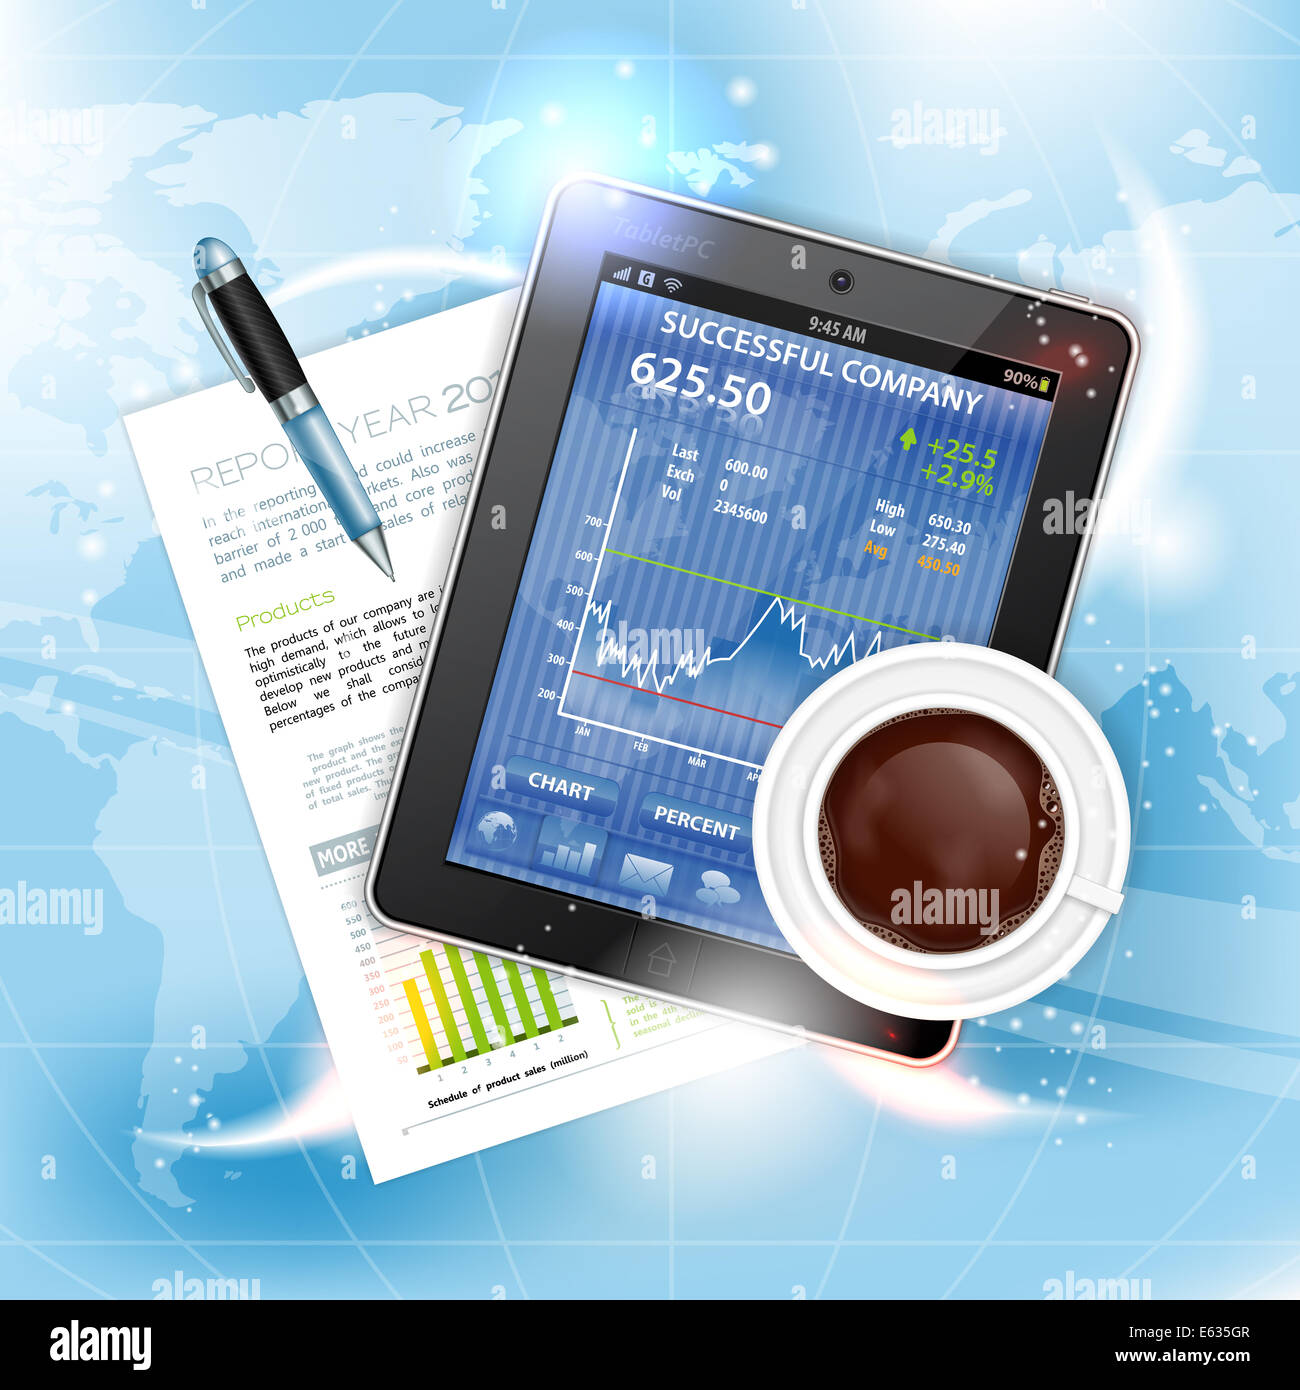 Global Business, Internet and Corporate Work Concept with Tablet PC, Report, Pen and Coffee Cup on abstract background - Stock Image